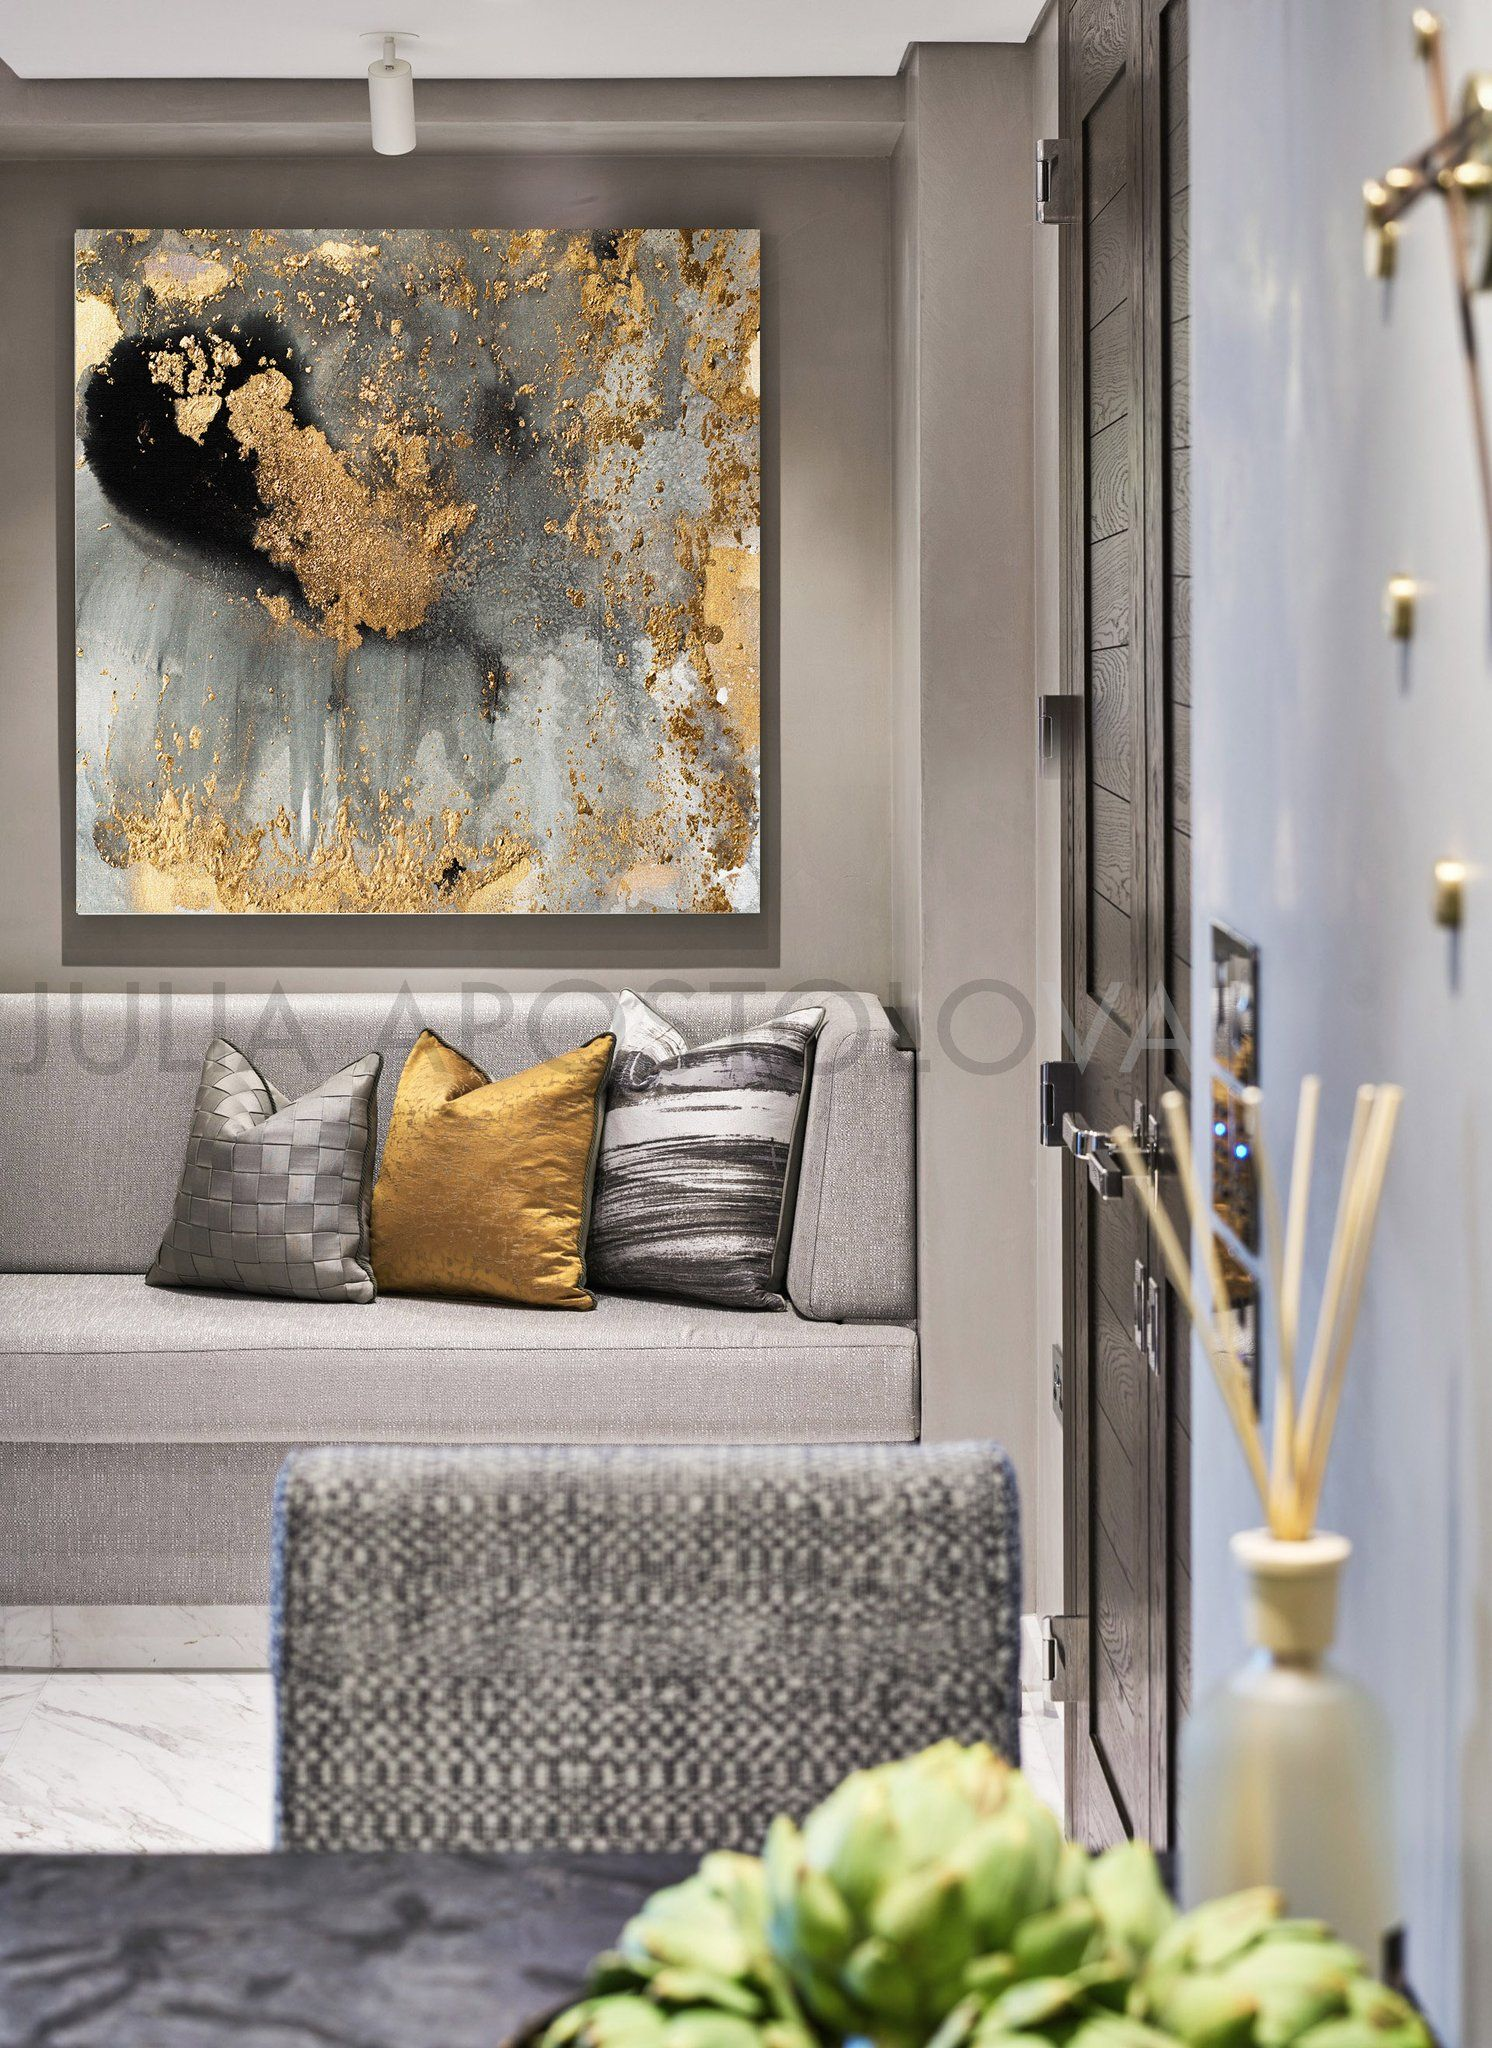 45 Gray Gold And Black Watercolor Large Goldleaf Reproduction Abstract Wall Art For Modern Interiors Xxl Canvas Print Painting By Julia Large Wall Decor Gold Living Room Living Decor #wall #art #contemporary #living #room